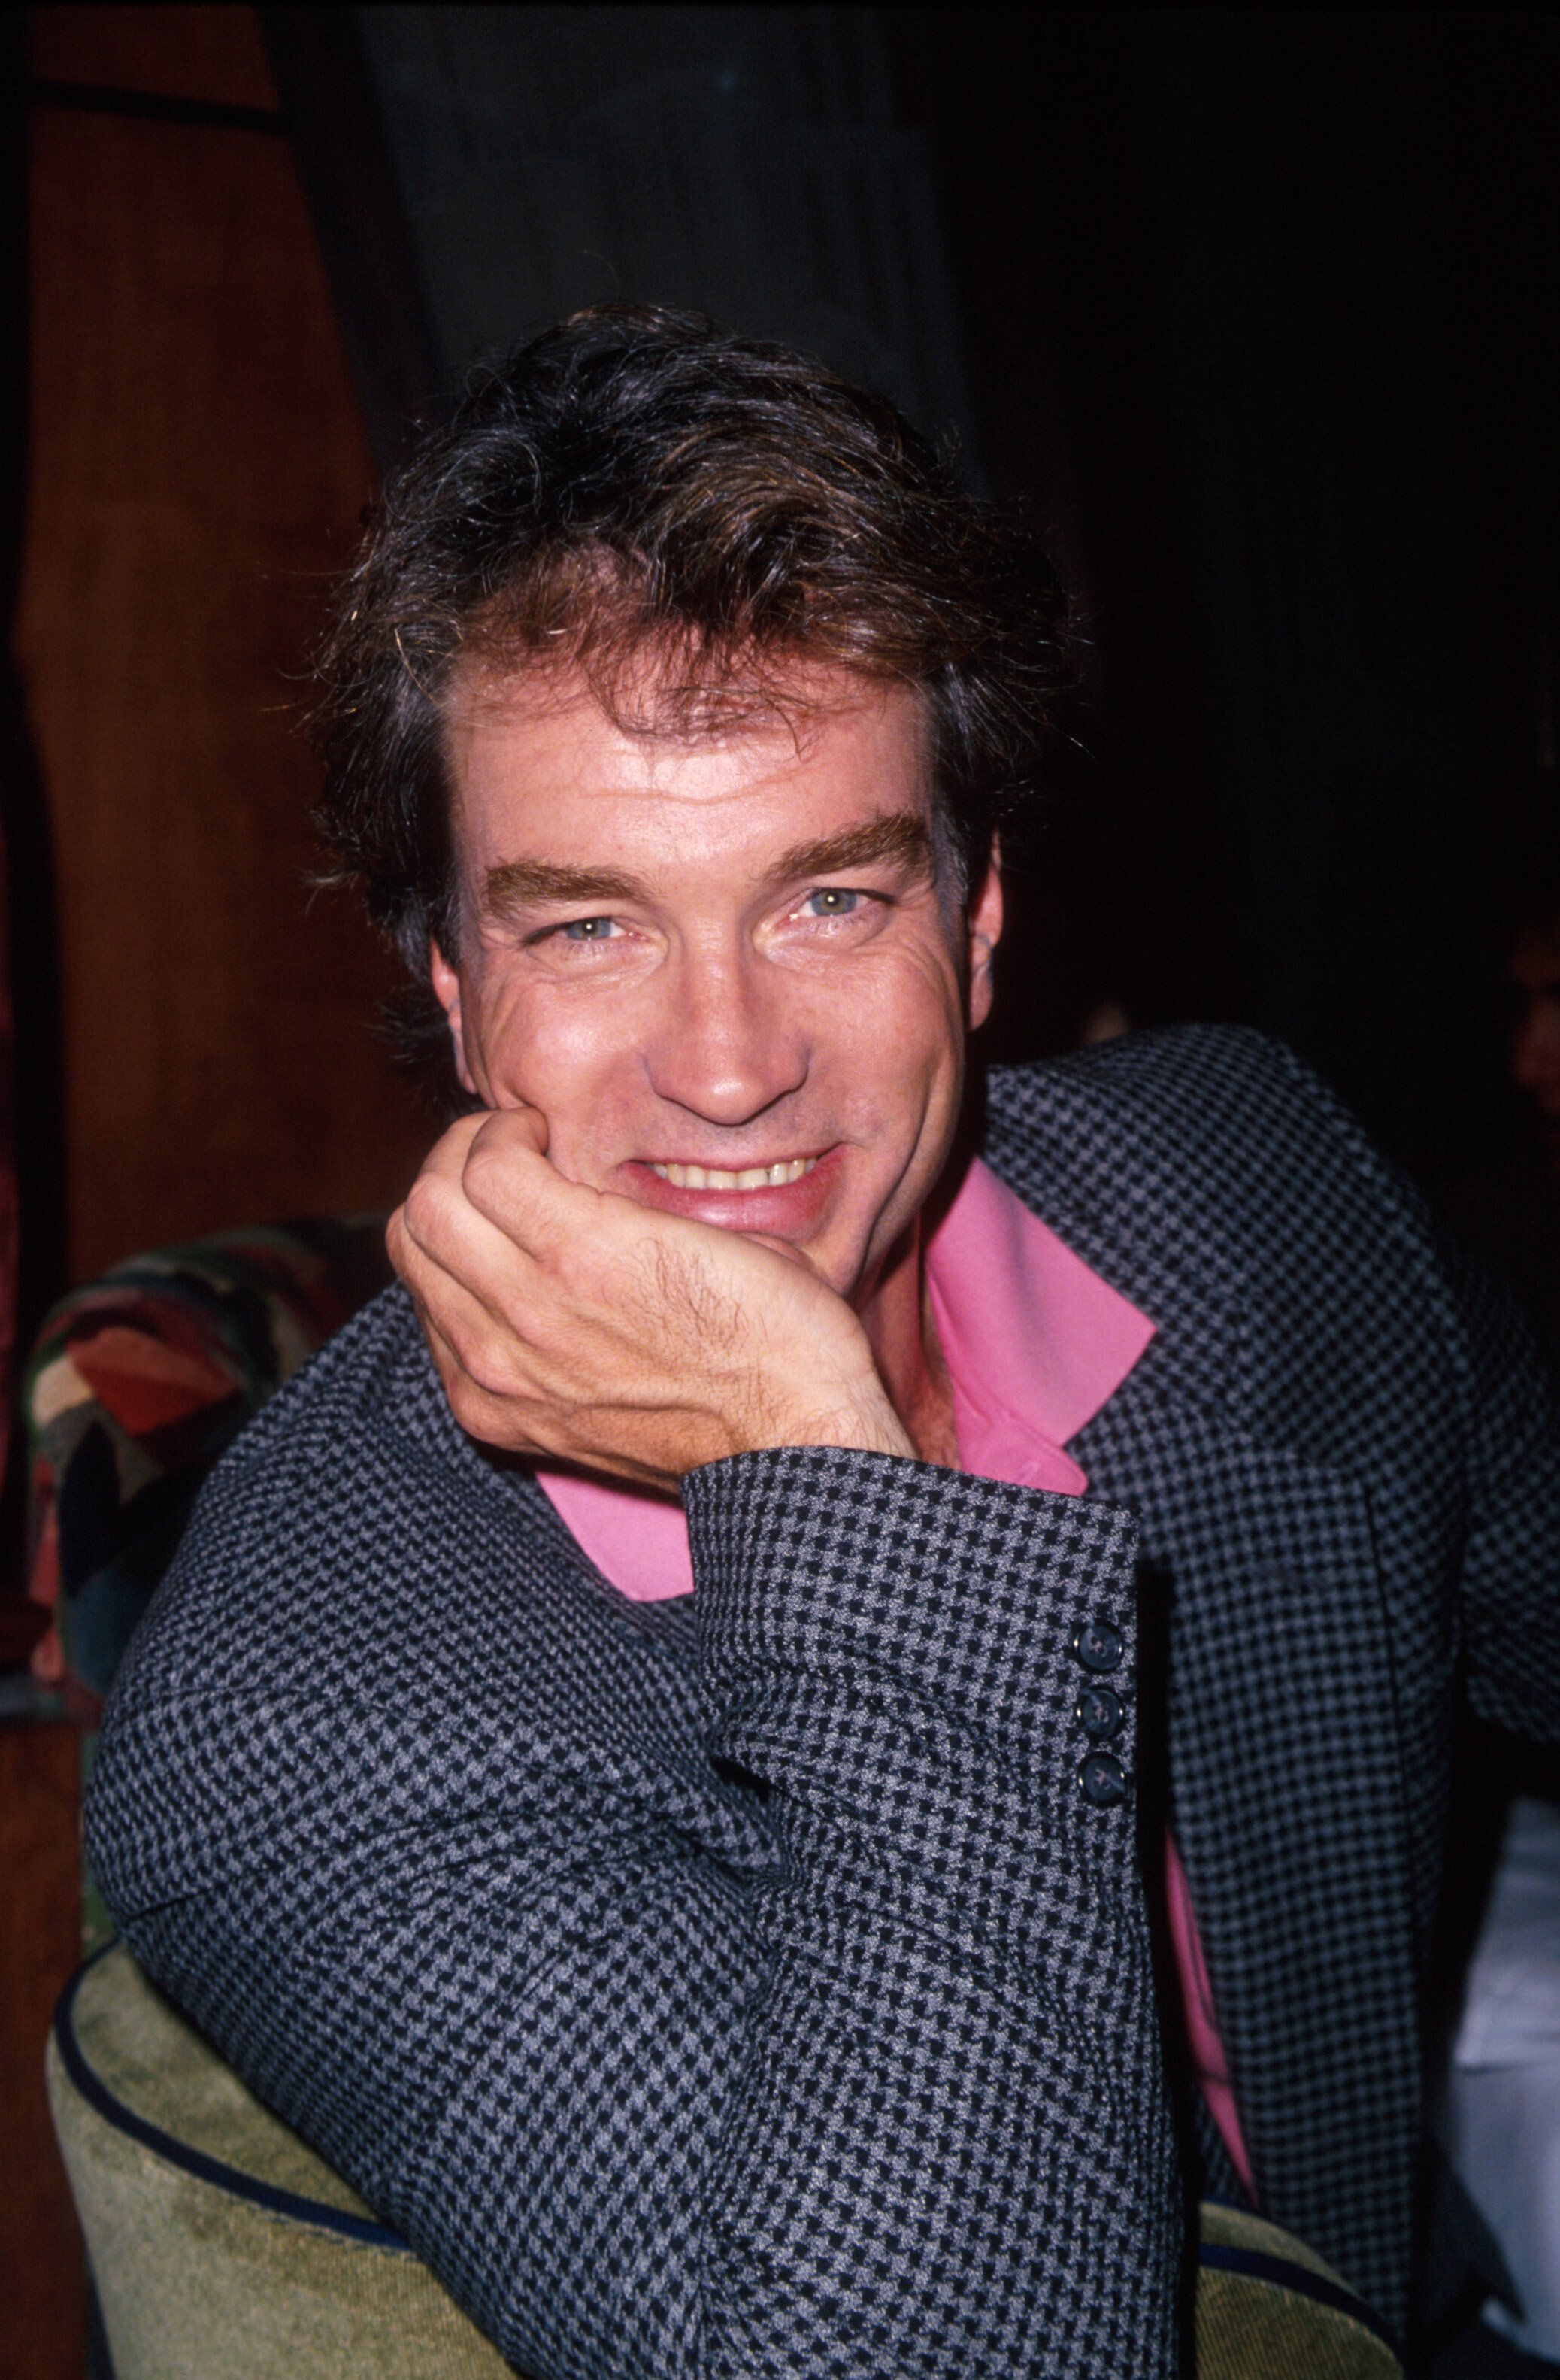 Actor  John Callahan. | Photo by Dave Allocca/DMI/The LIFE Picture Collection via Getty Images